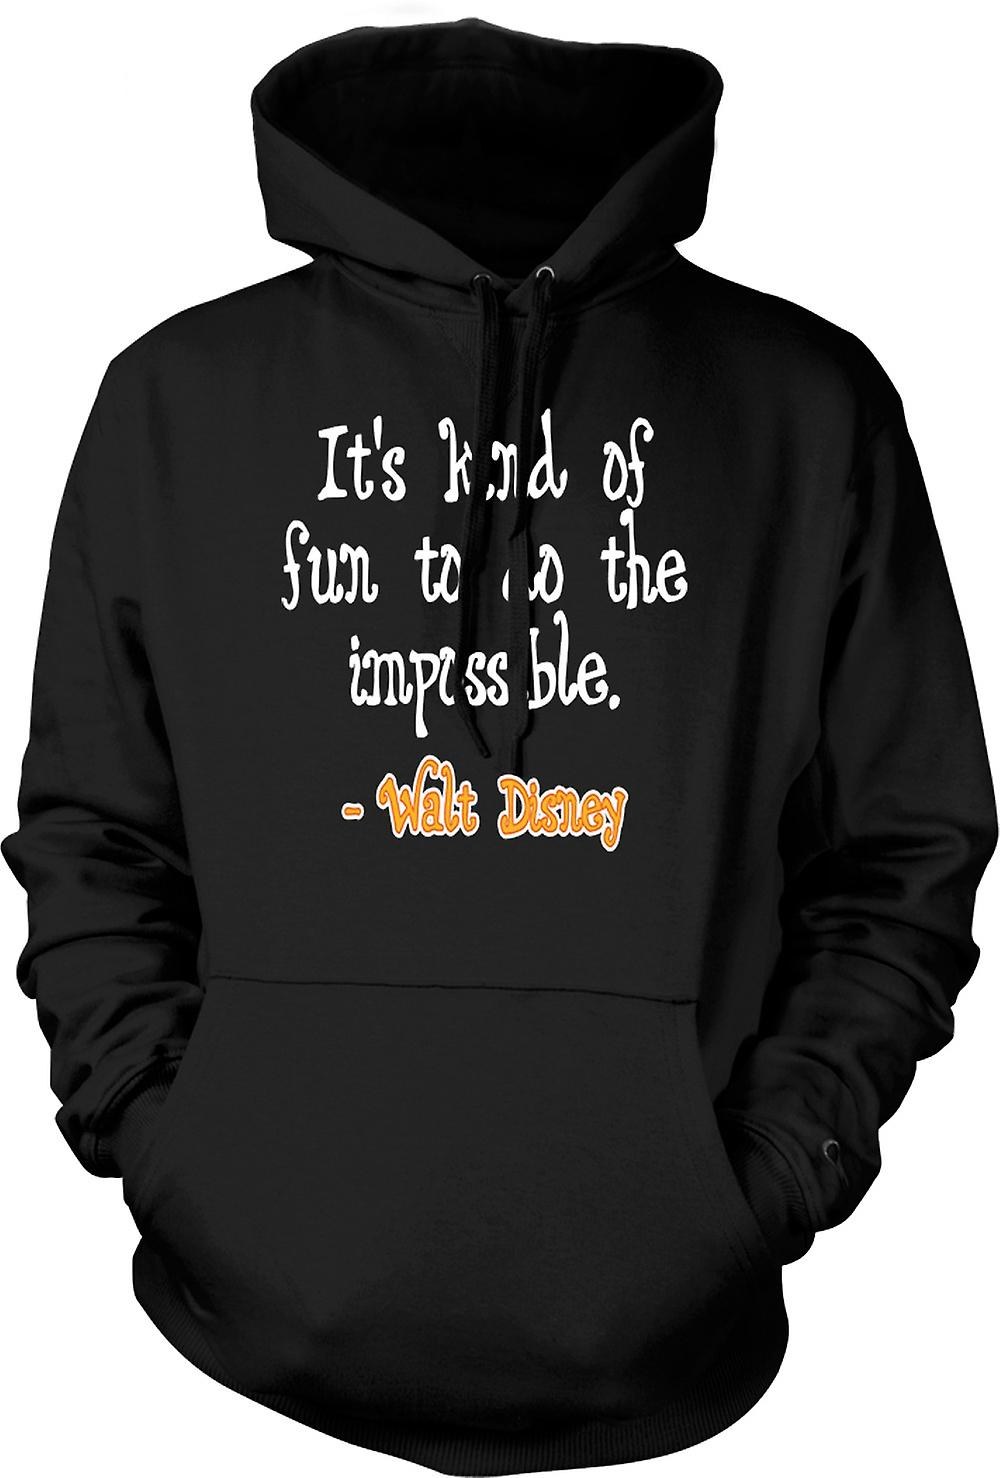 Kids Hoodie - It's Kind Of Fun To Do The Impossible - Walt Disney